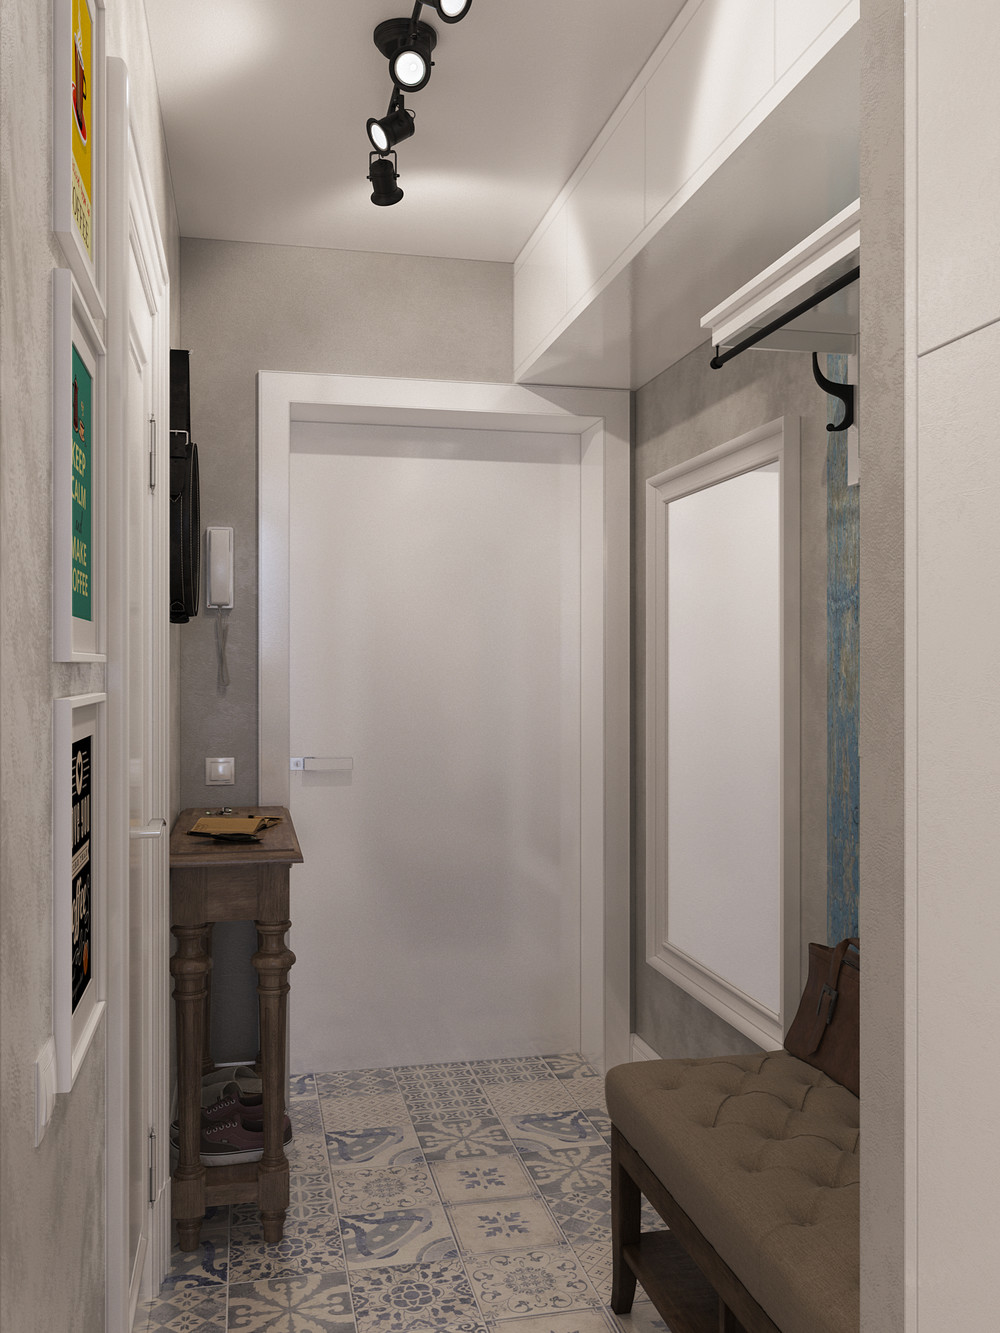 Foyer For Home : Designing for super small spaces micro apartments